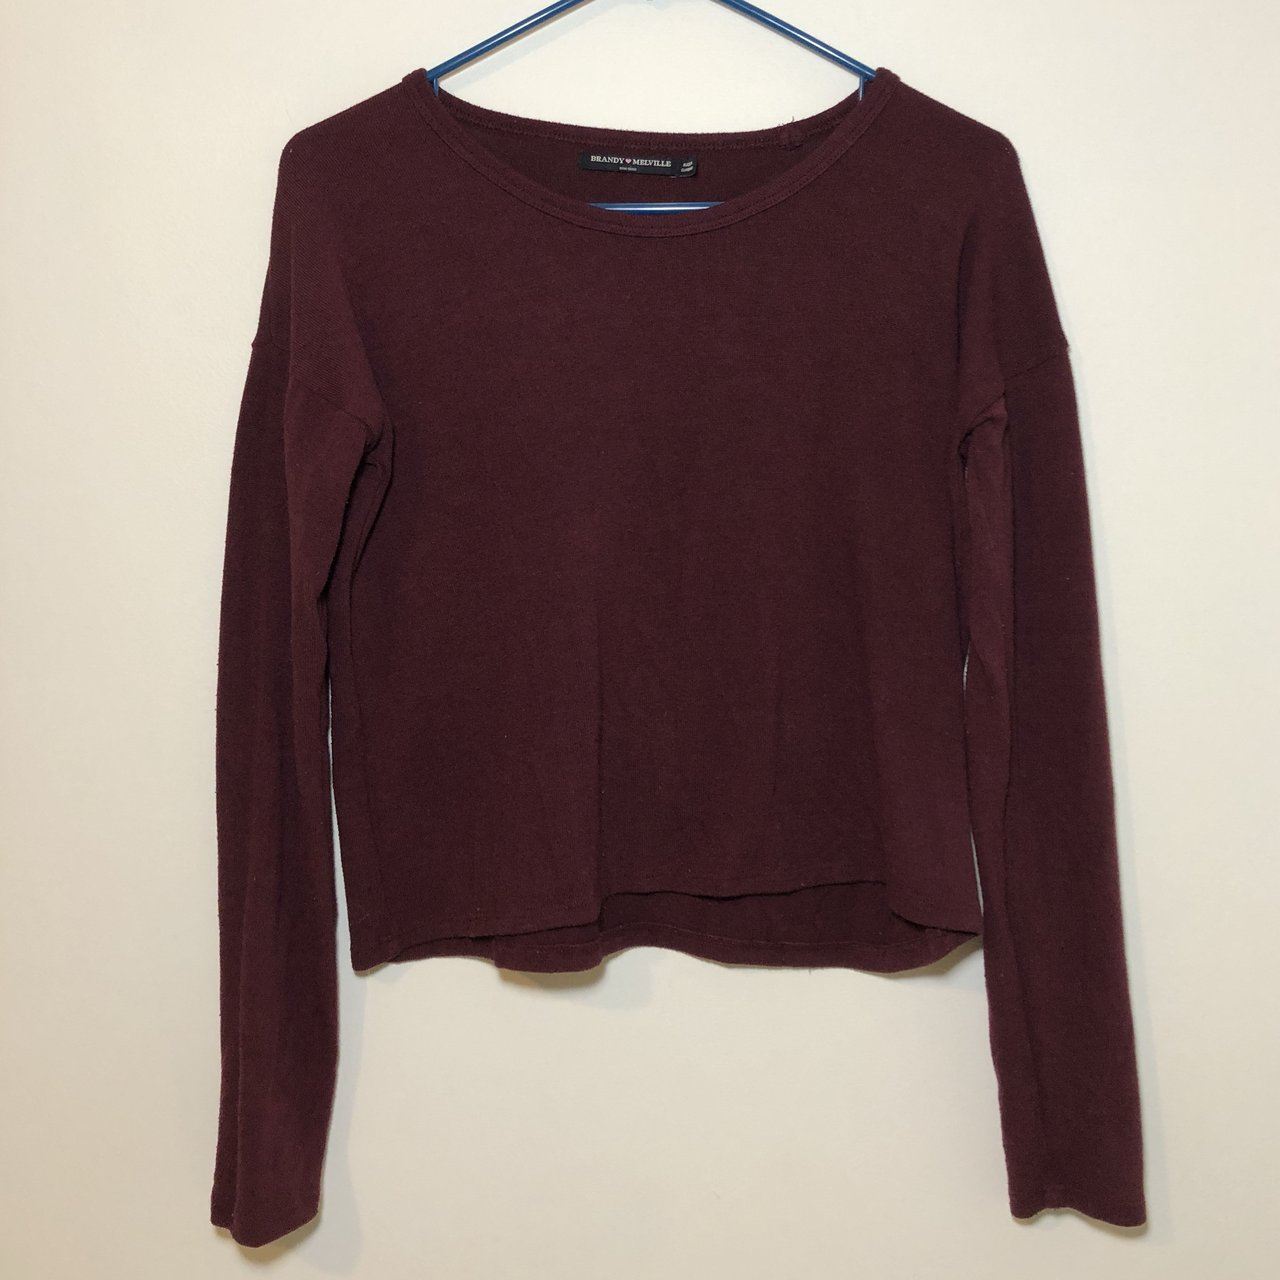 7f3beace8e432 Super soft brandy melville maroon sweater. Relaxed fit but - Depop